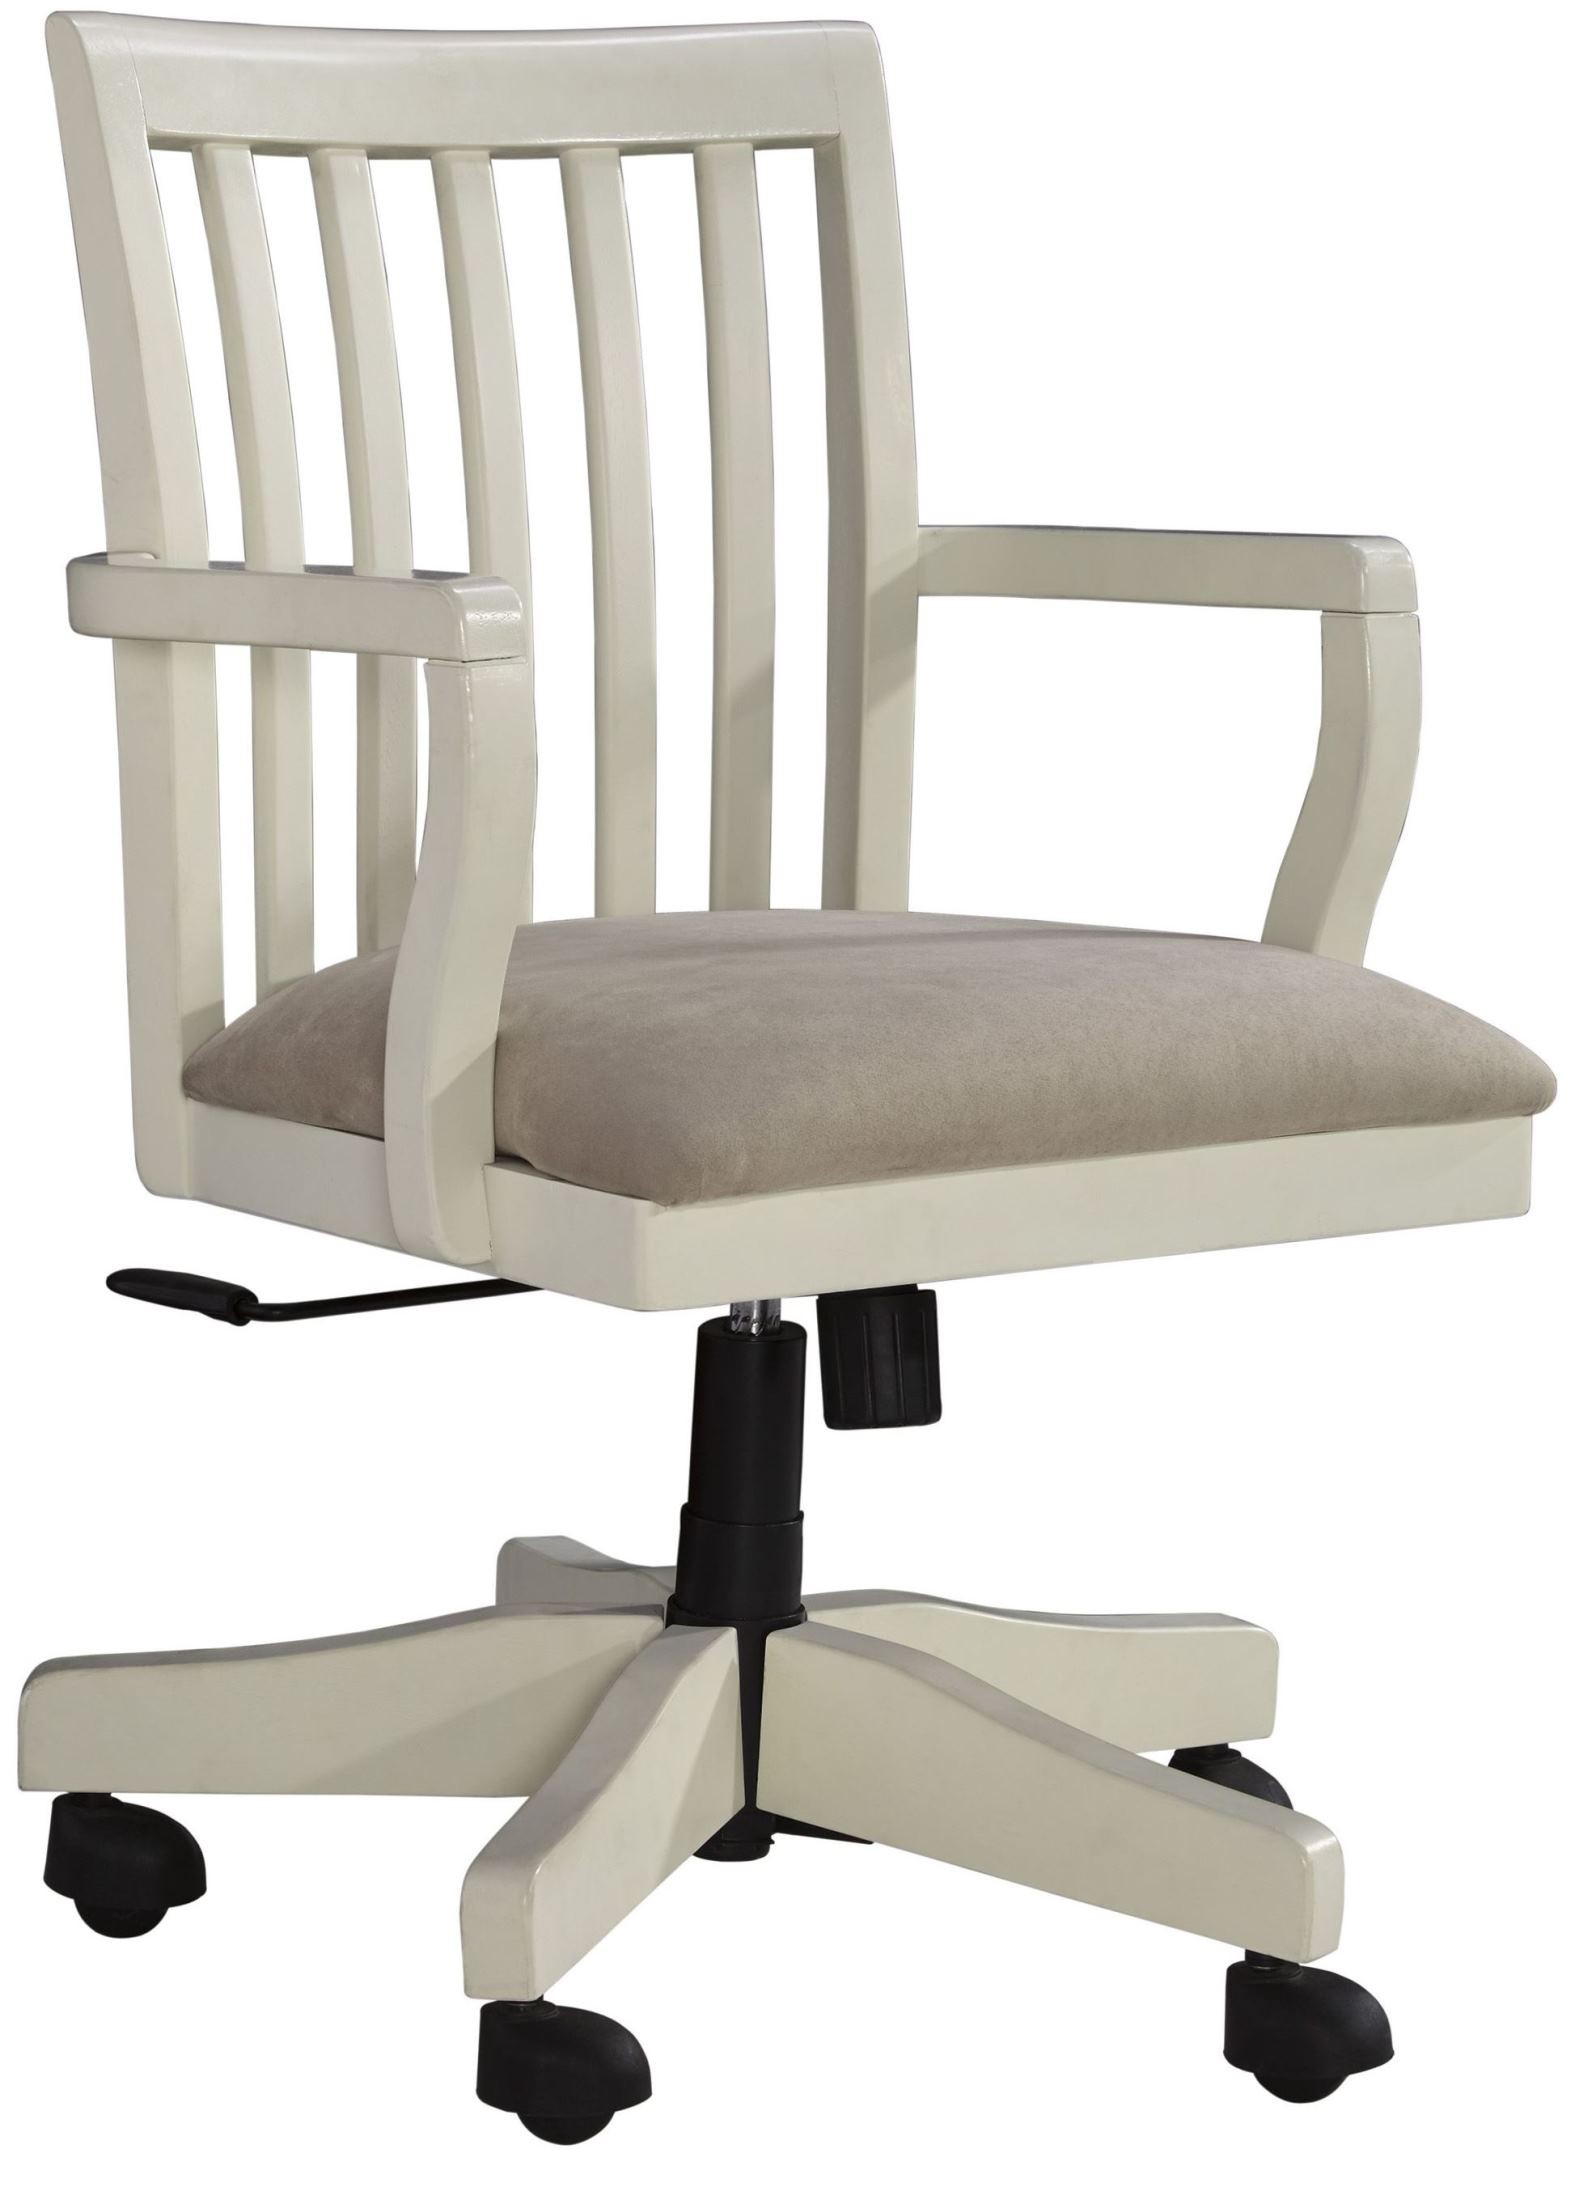 Sarvanny cream home office desk chair from ashley h583 for Cream office chair